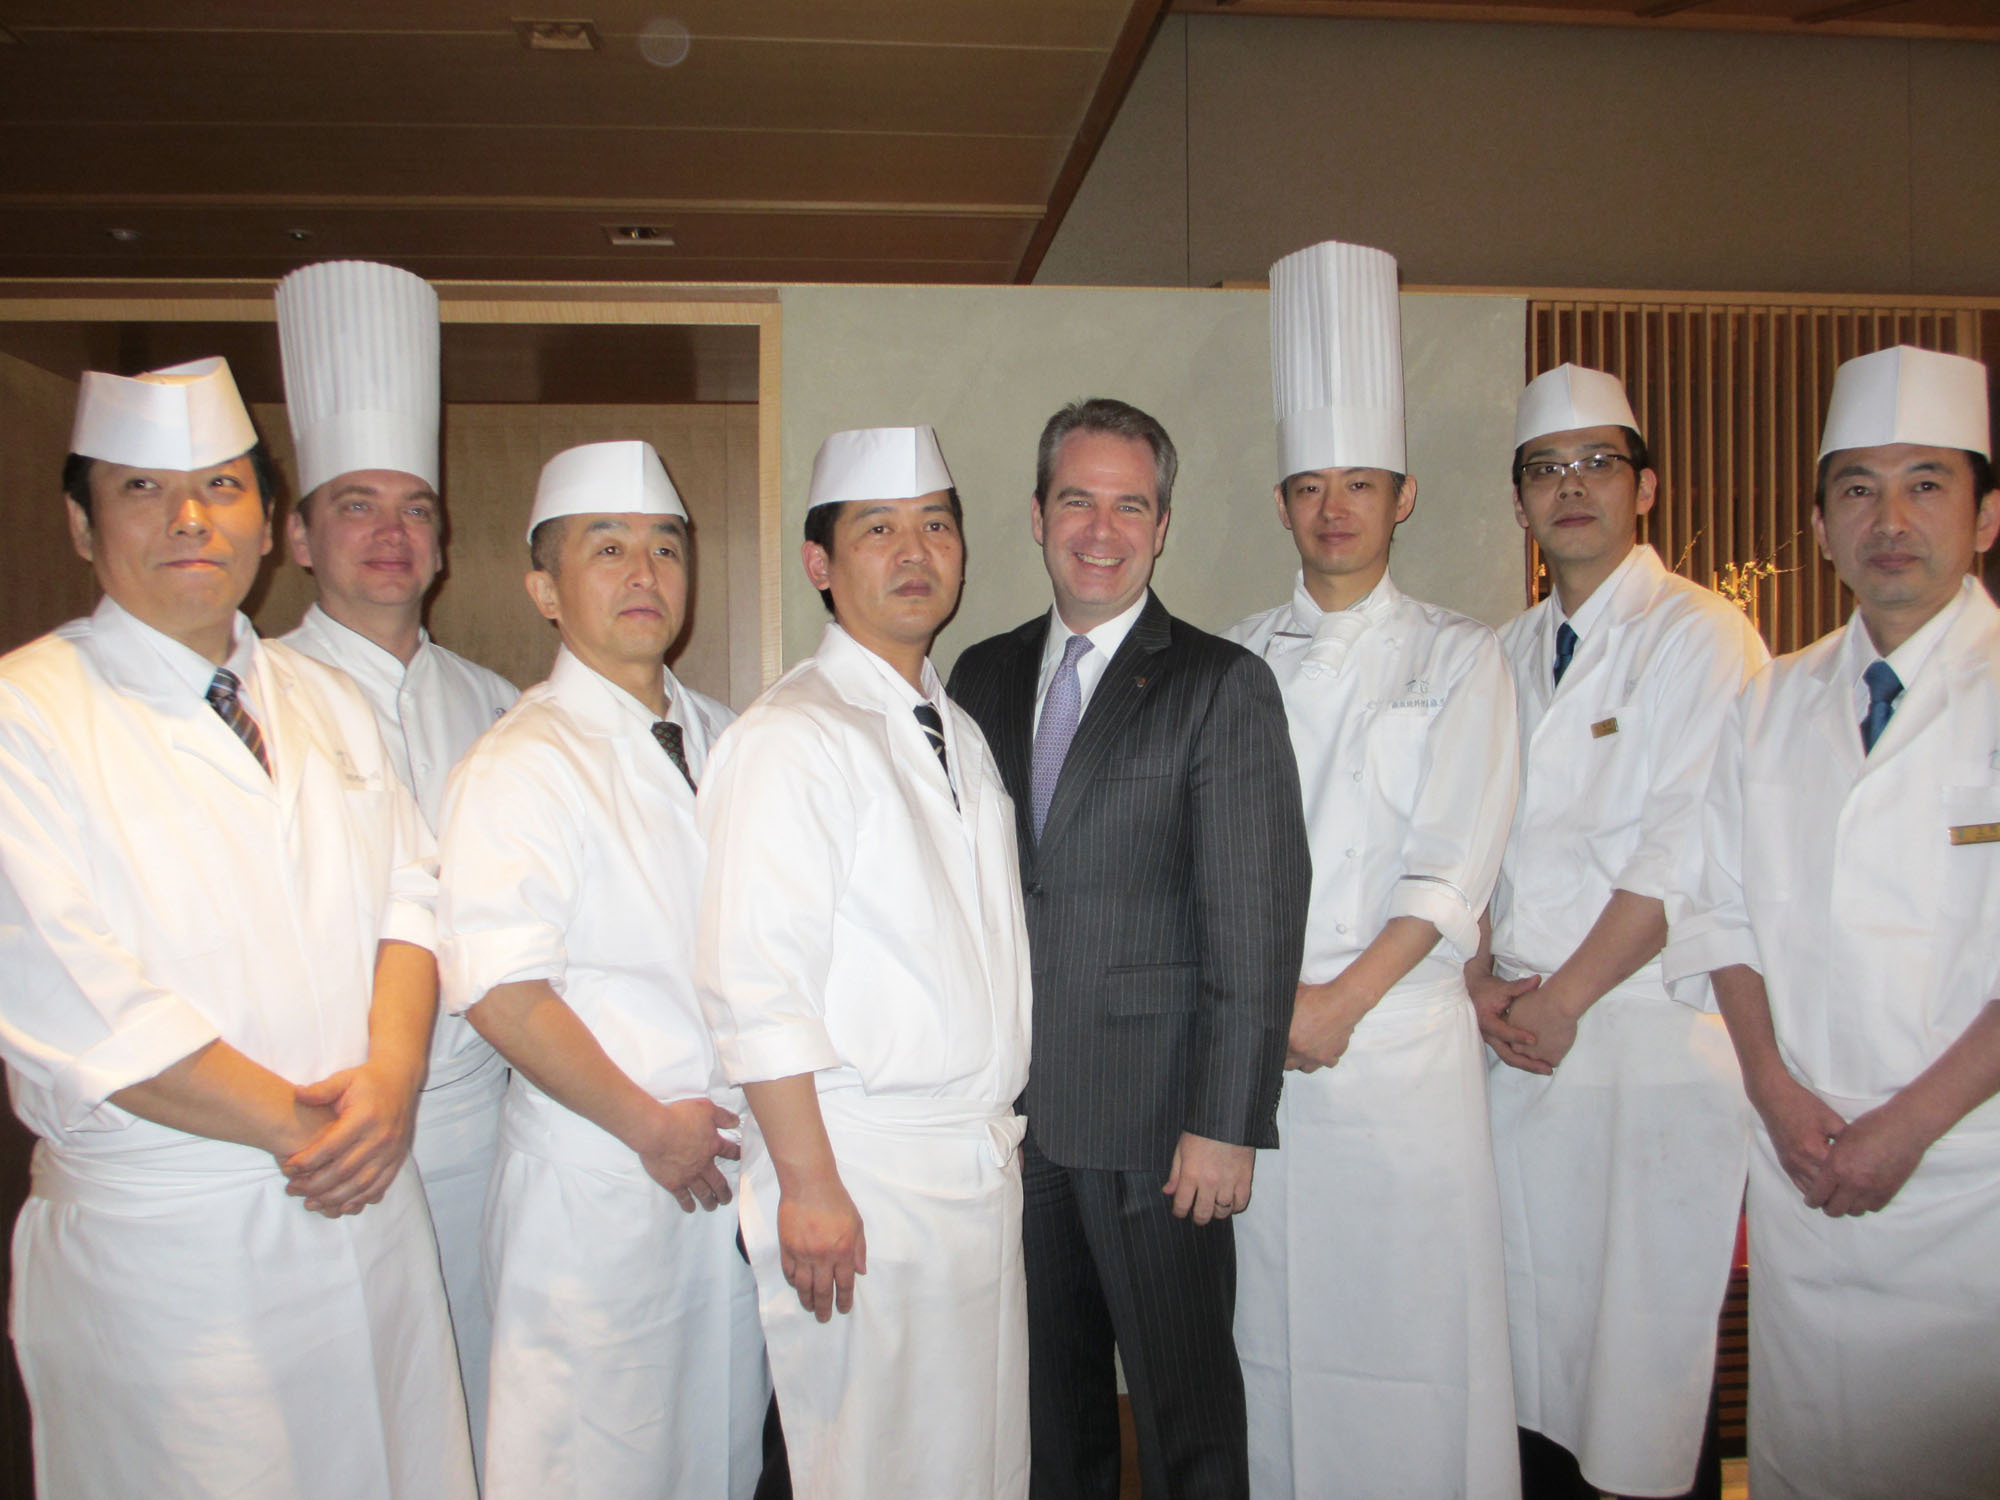 Christopher Clark (fourth from right), general manager of The Ritz-Carlton Osaka, poses with chefs from the Hanagatami restaurant at a press party on March 3, the day before the Japanese restaurant reopened. | HIROKO INOUE